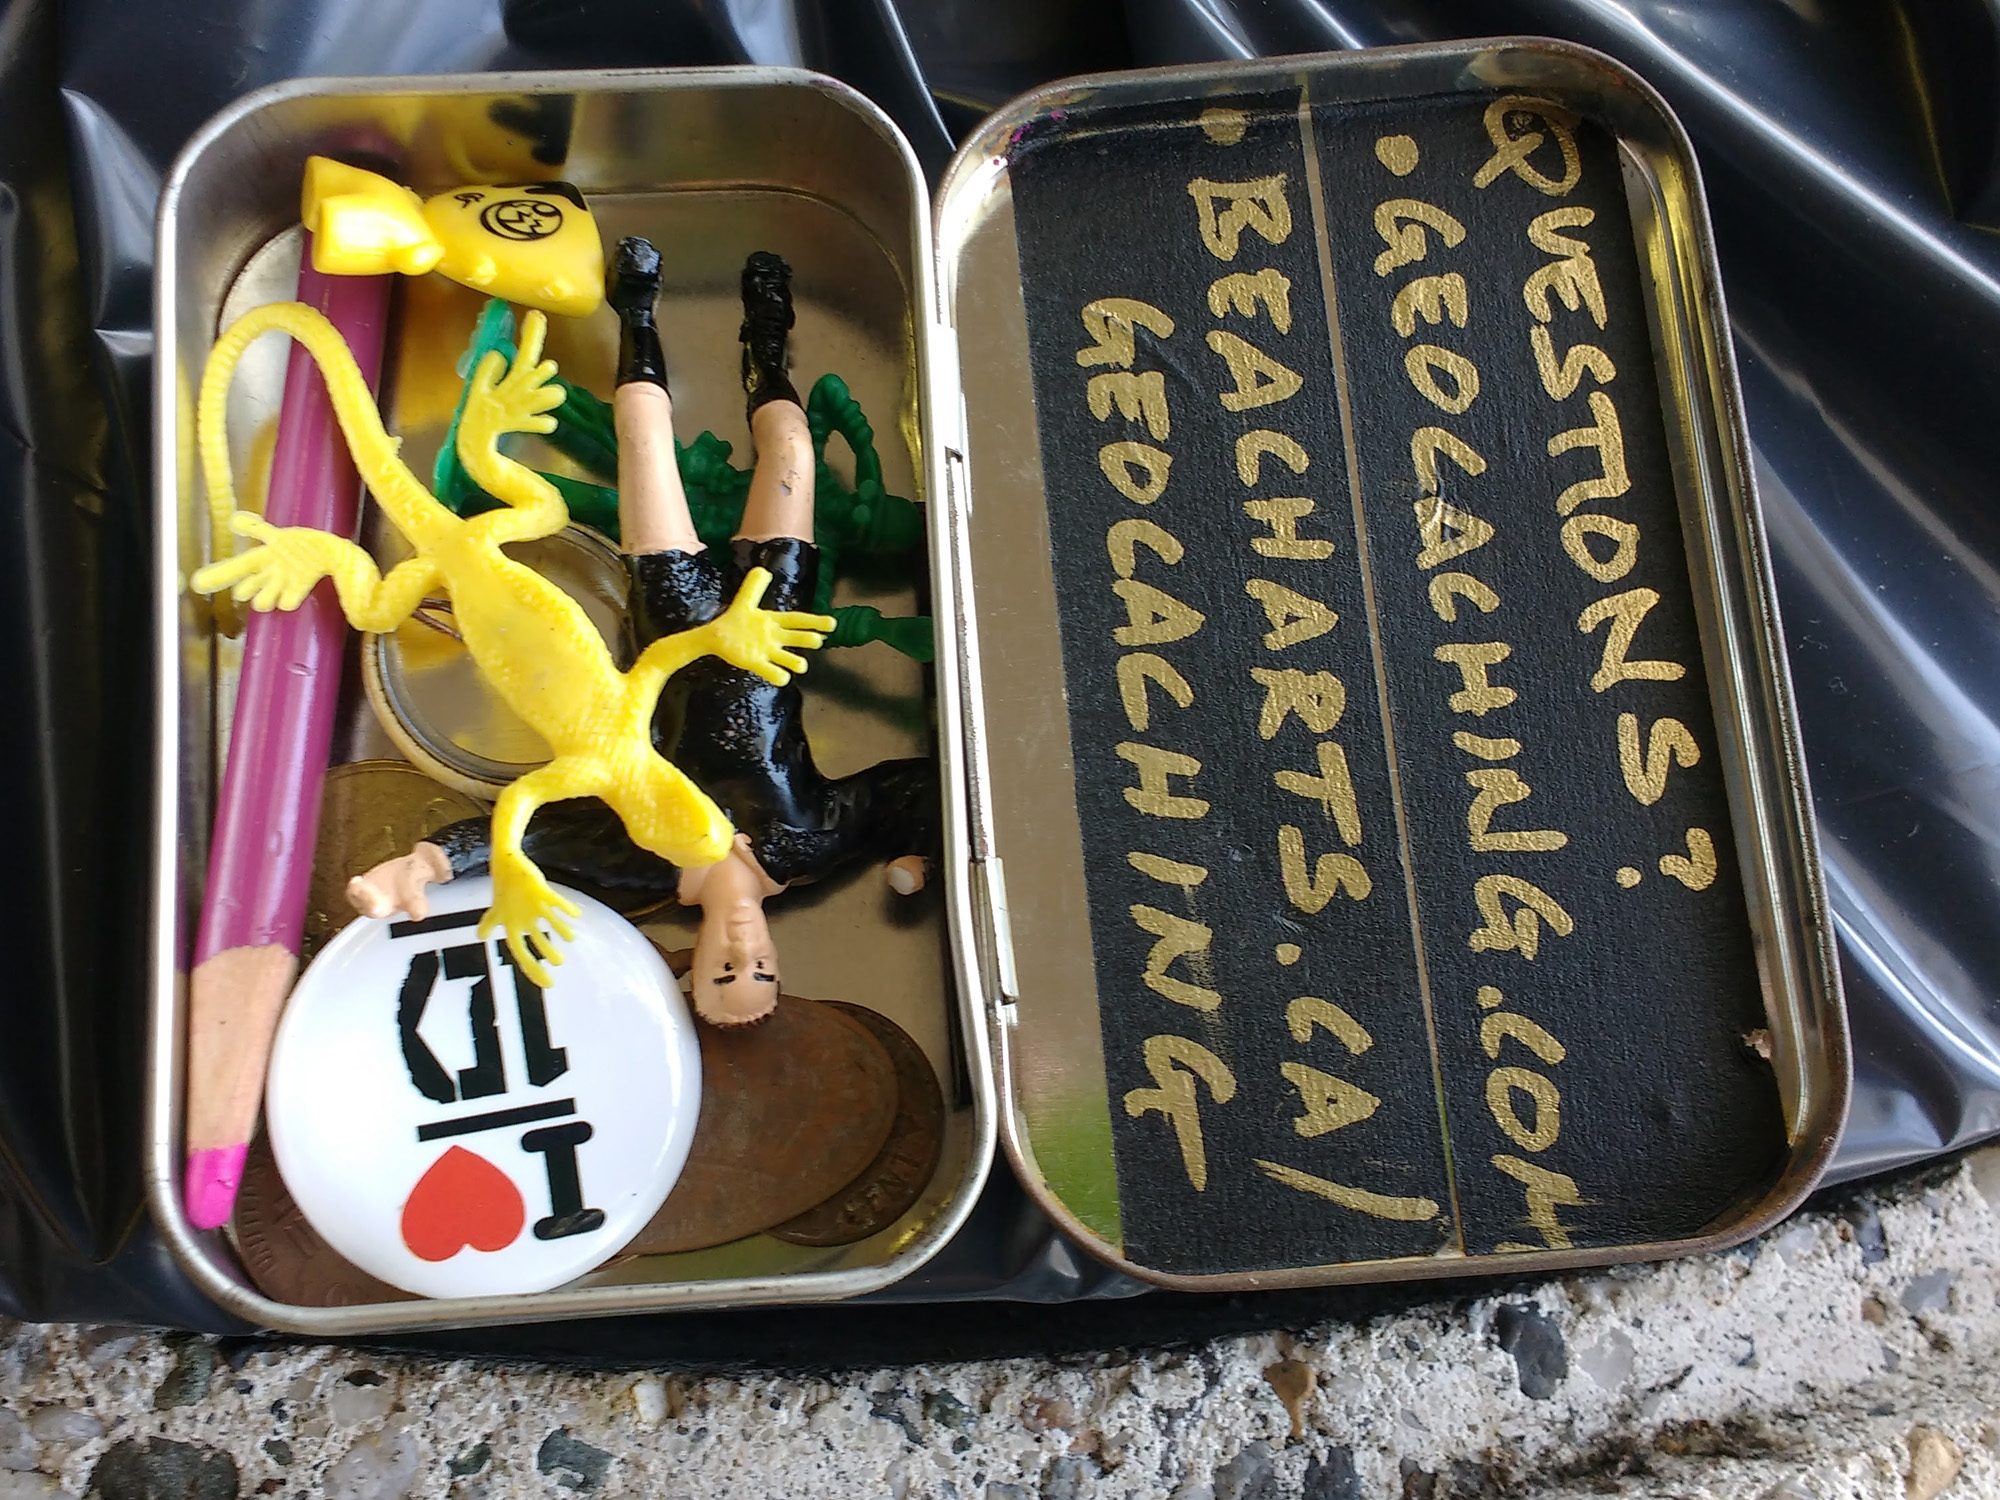 photo of the contents of a small geocache inside an Altoids tin